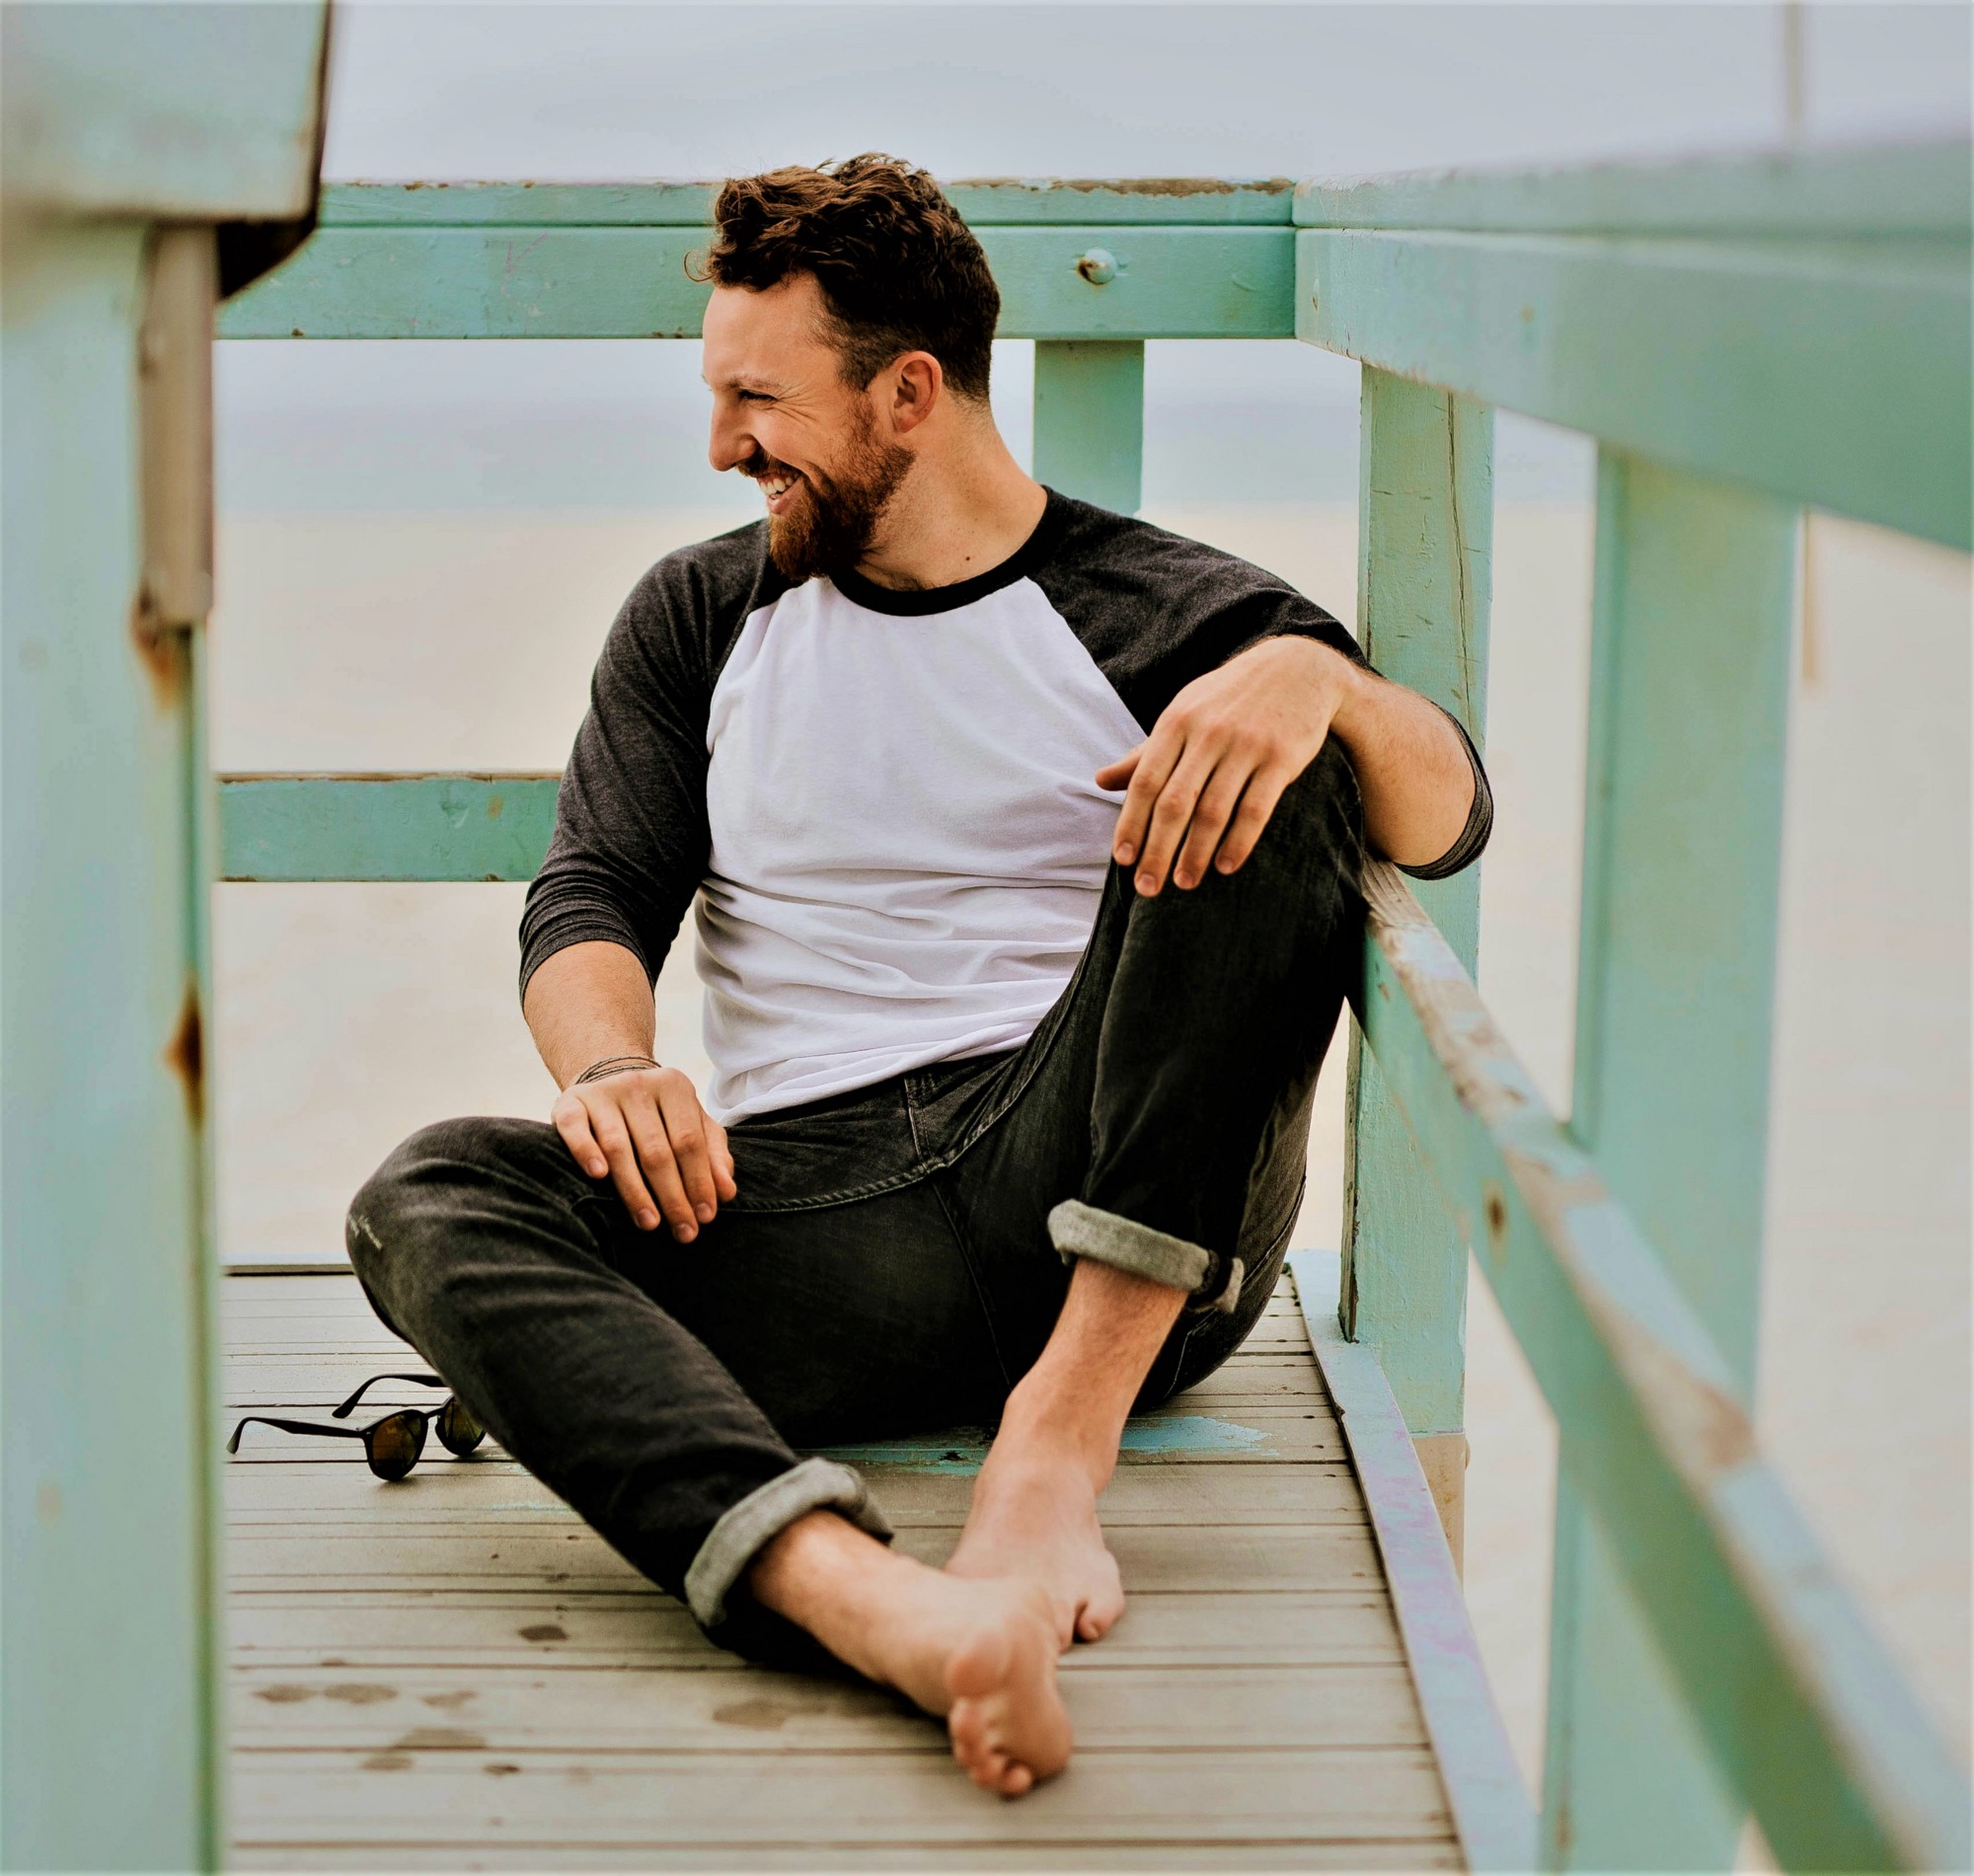 profile of smiling man with beard wearing white and black top and jeans sitting on wooden deck